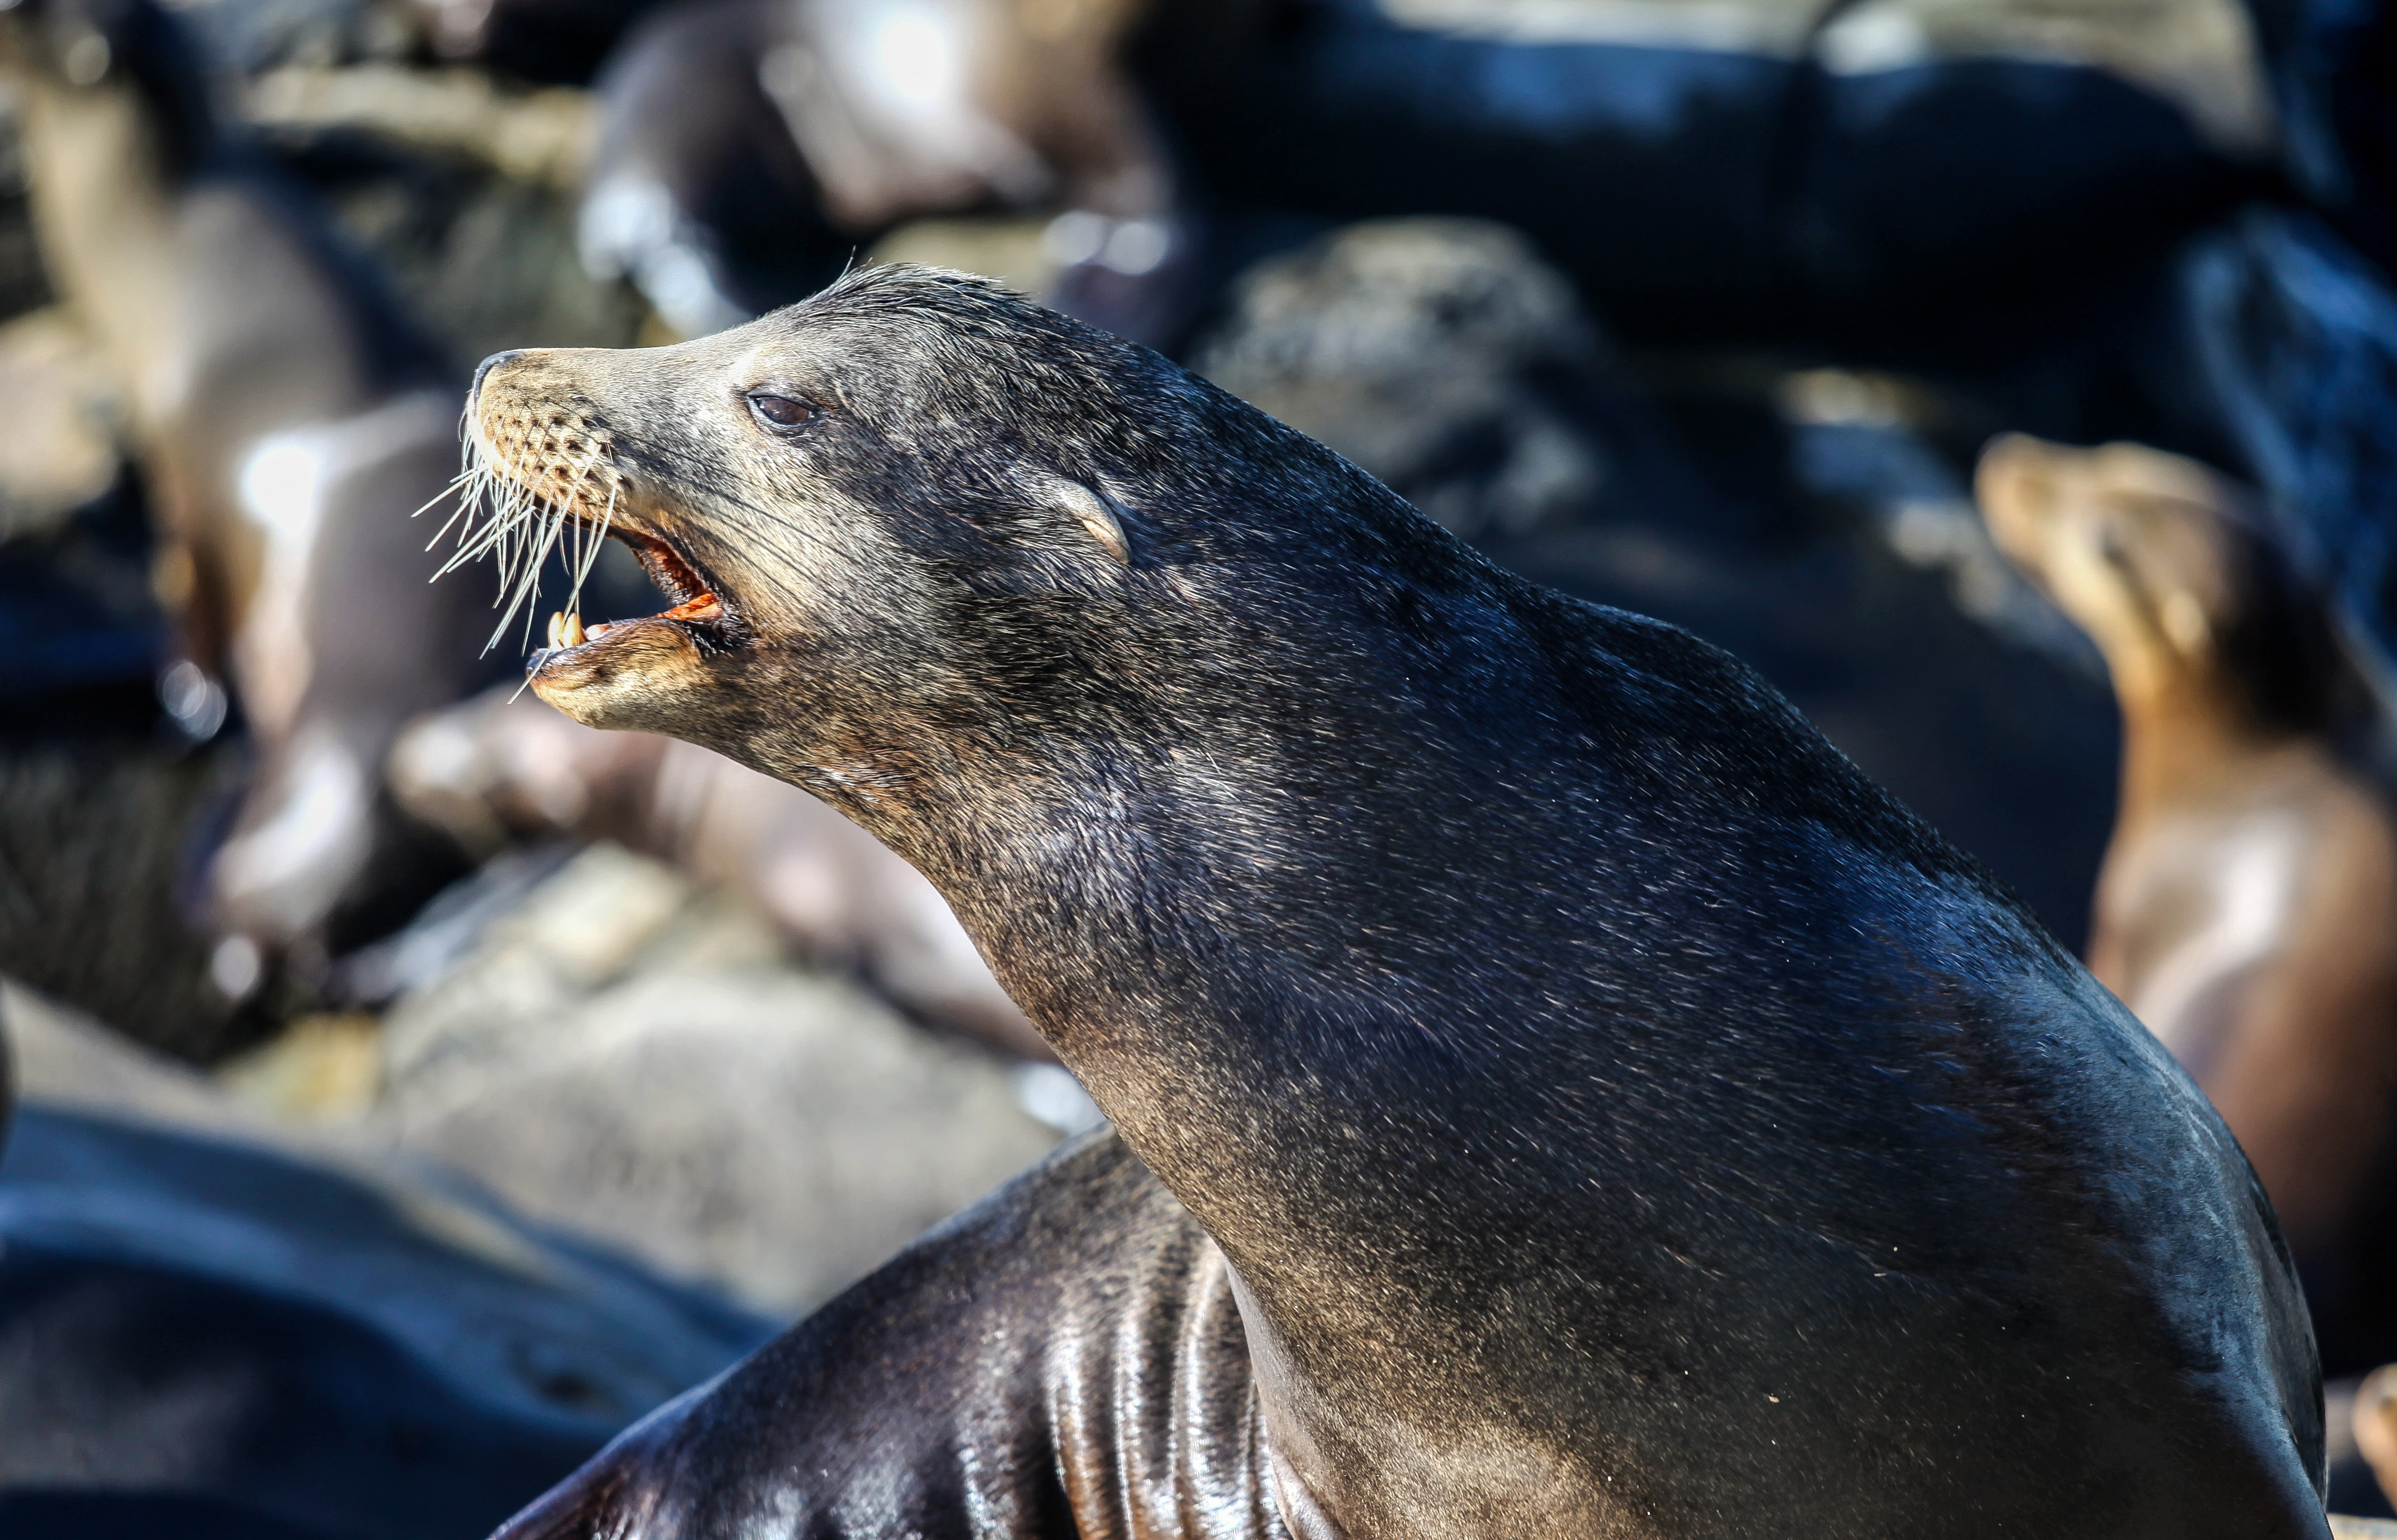 Wet sea lion roaring and showing teeth with more seals in background, La Jolla Cove